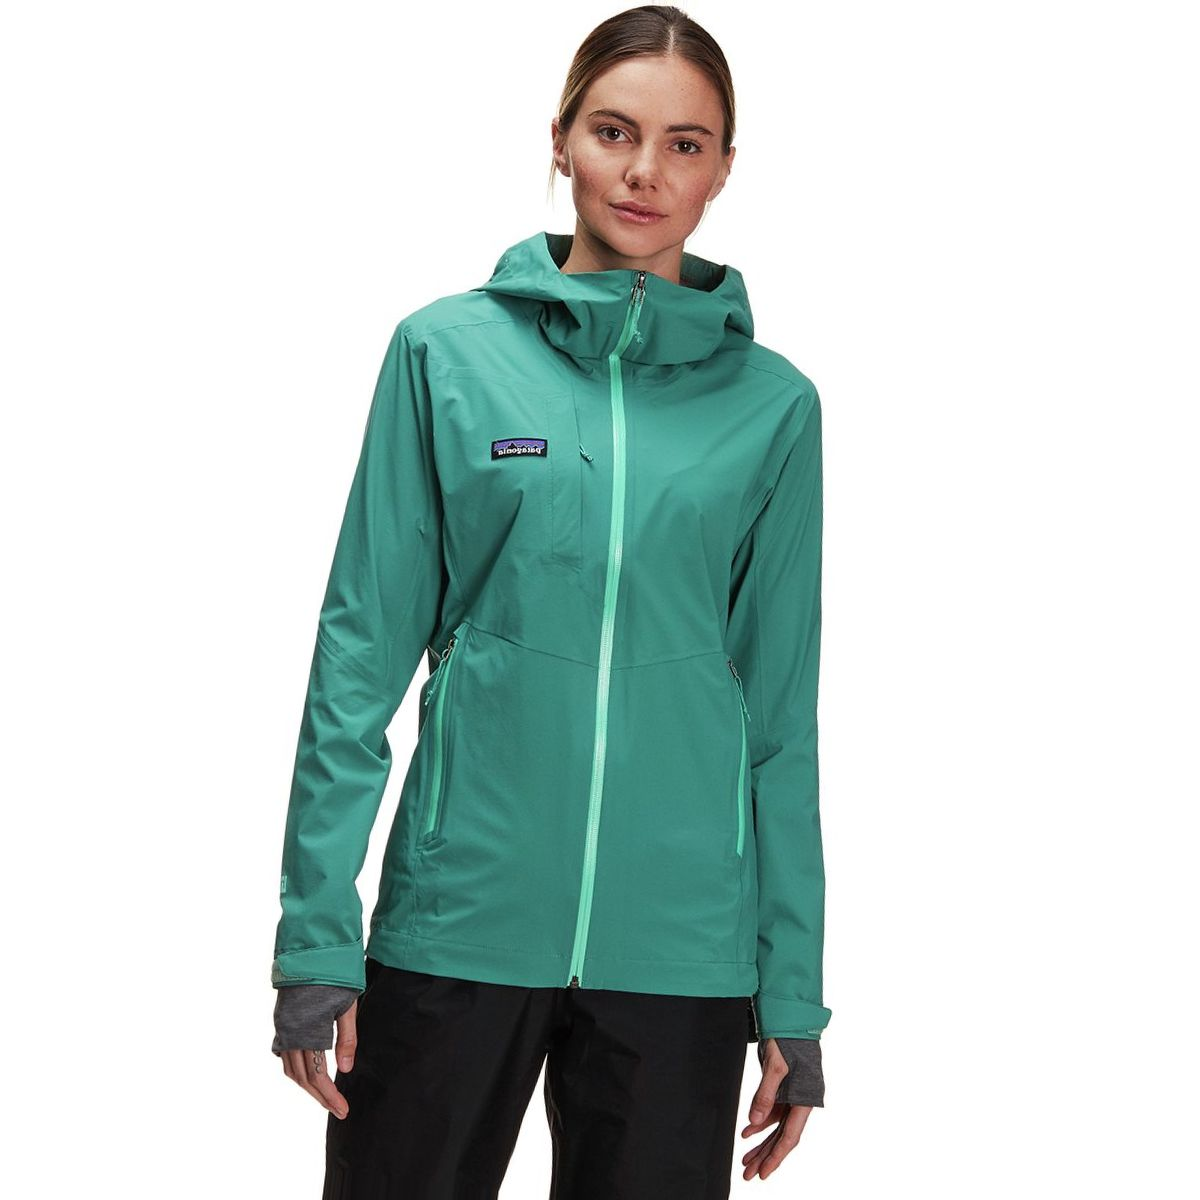 Patagonia Stretch Rainshadow Jacket - Women's